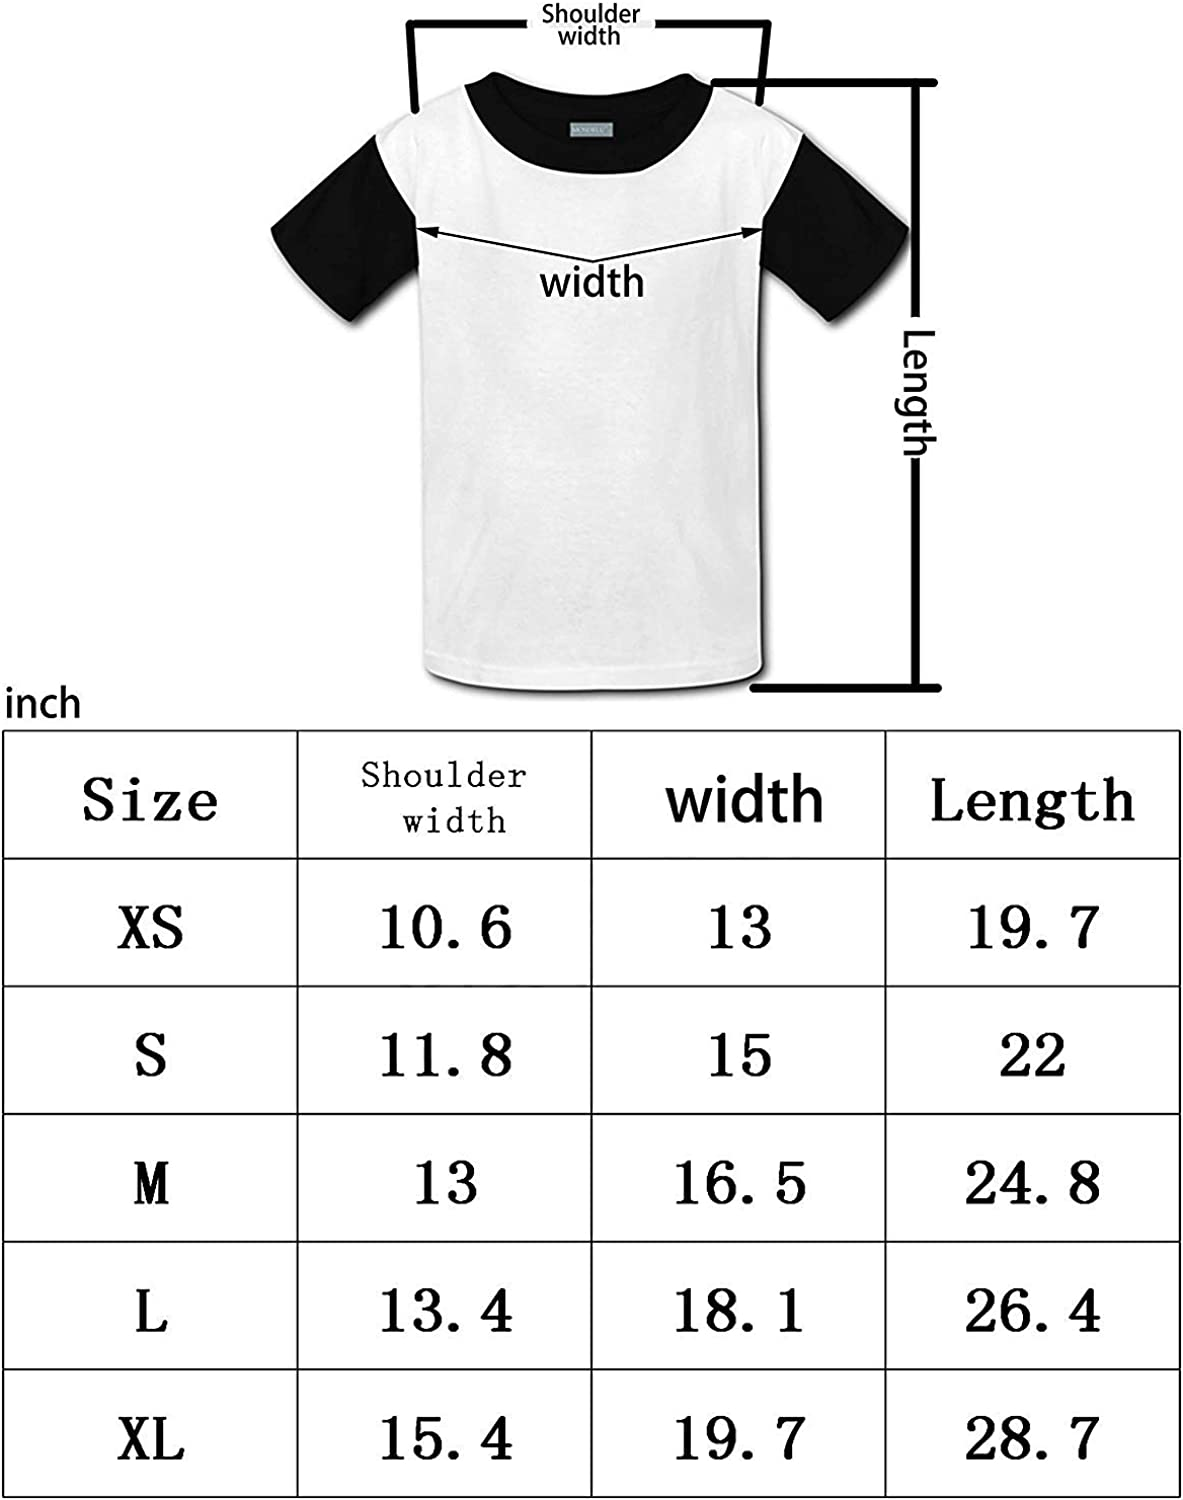 Boys Shirts Penny-Wise Girls Tee Shirt Youth Short Sleeve Teenager Youth T-Shirts Top